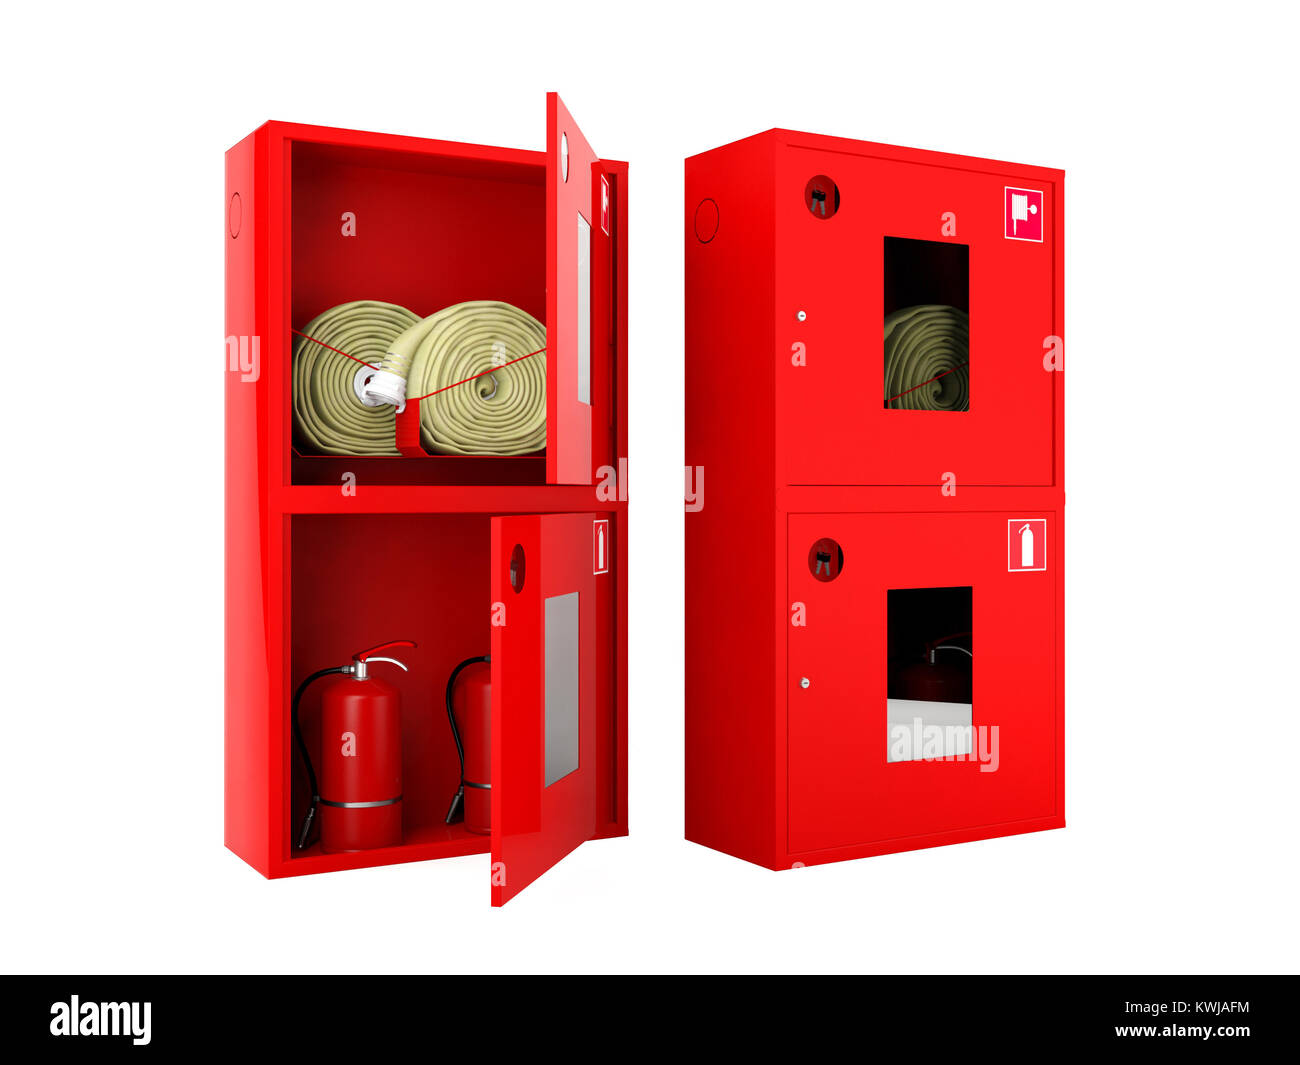 Red Fire Hose And Fire Extinguisher Cabinets On White Background